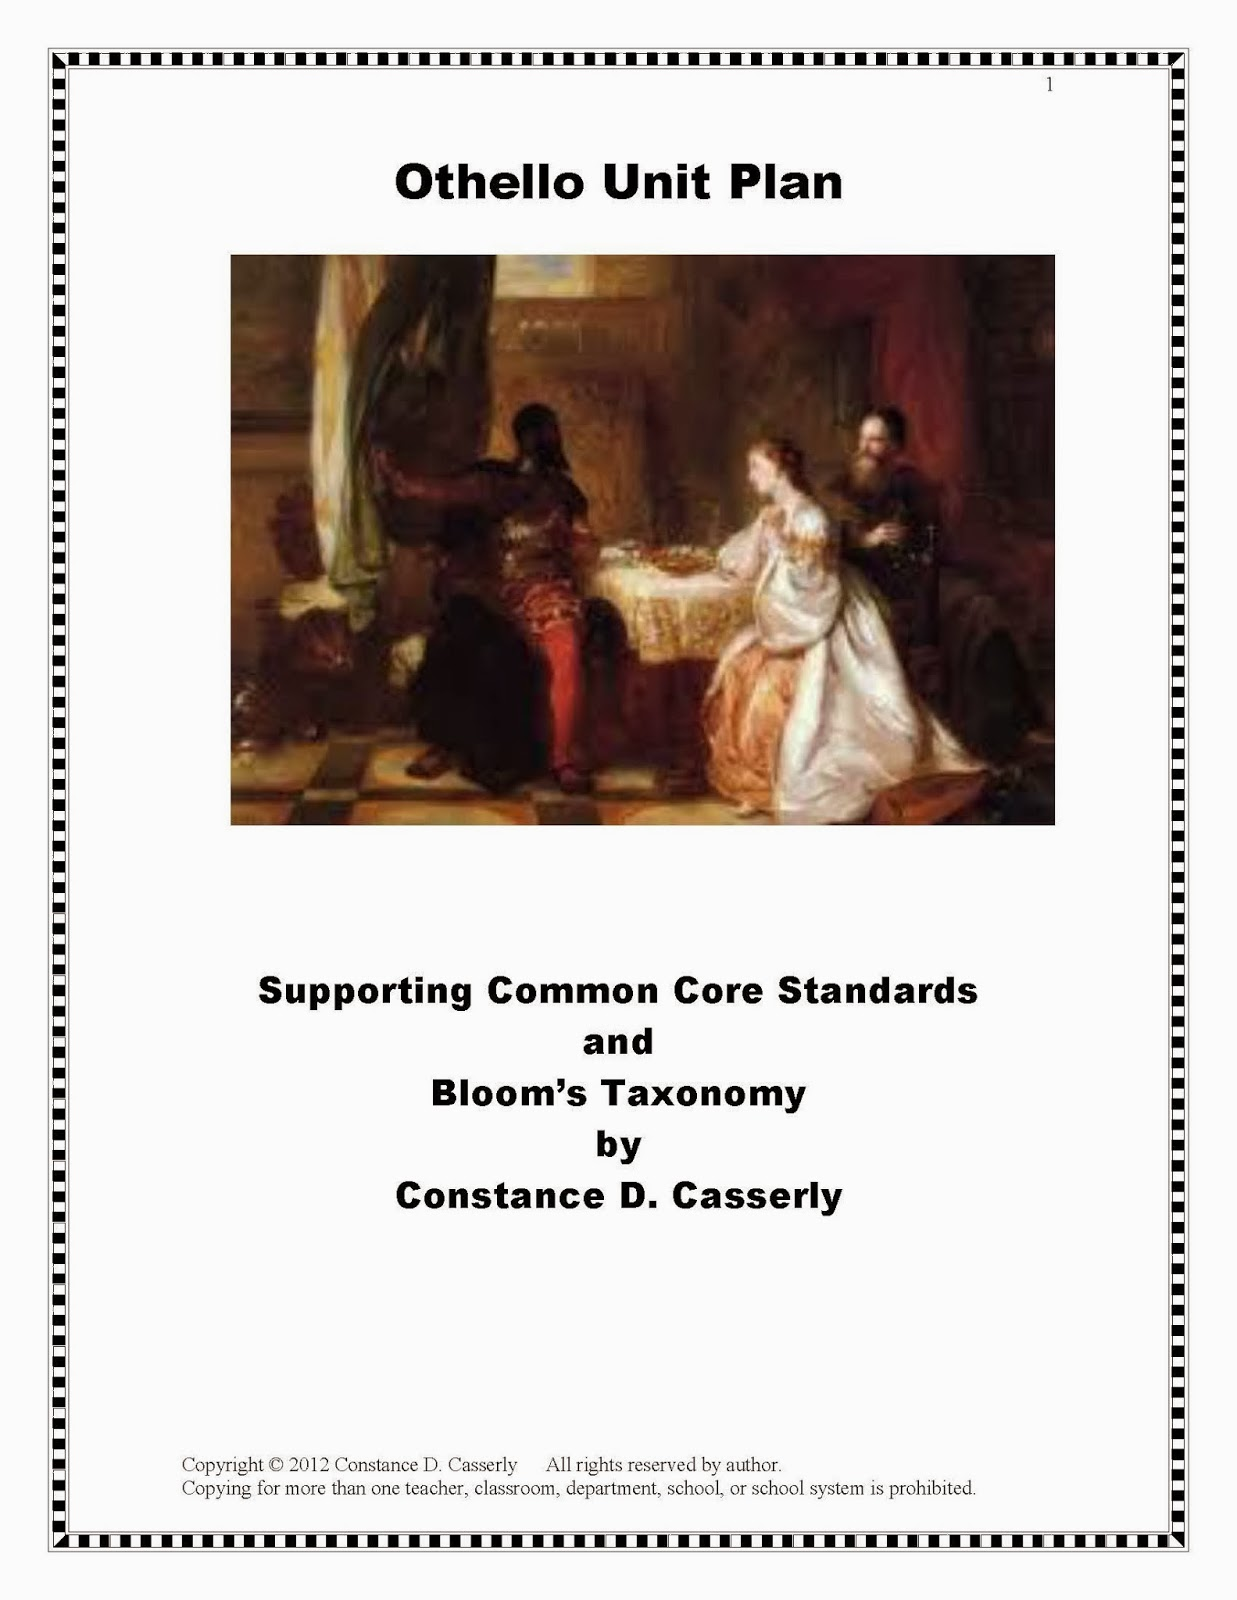 Othello Unit Plan Cover